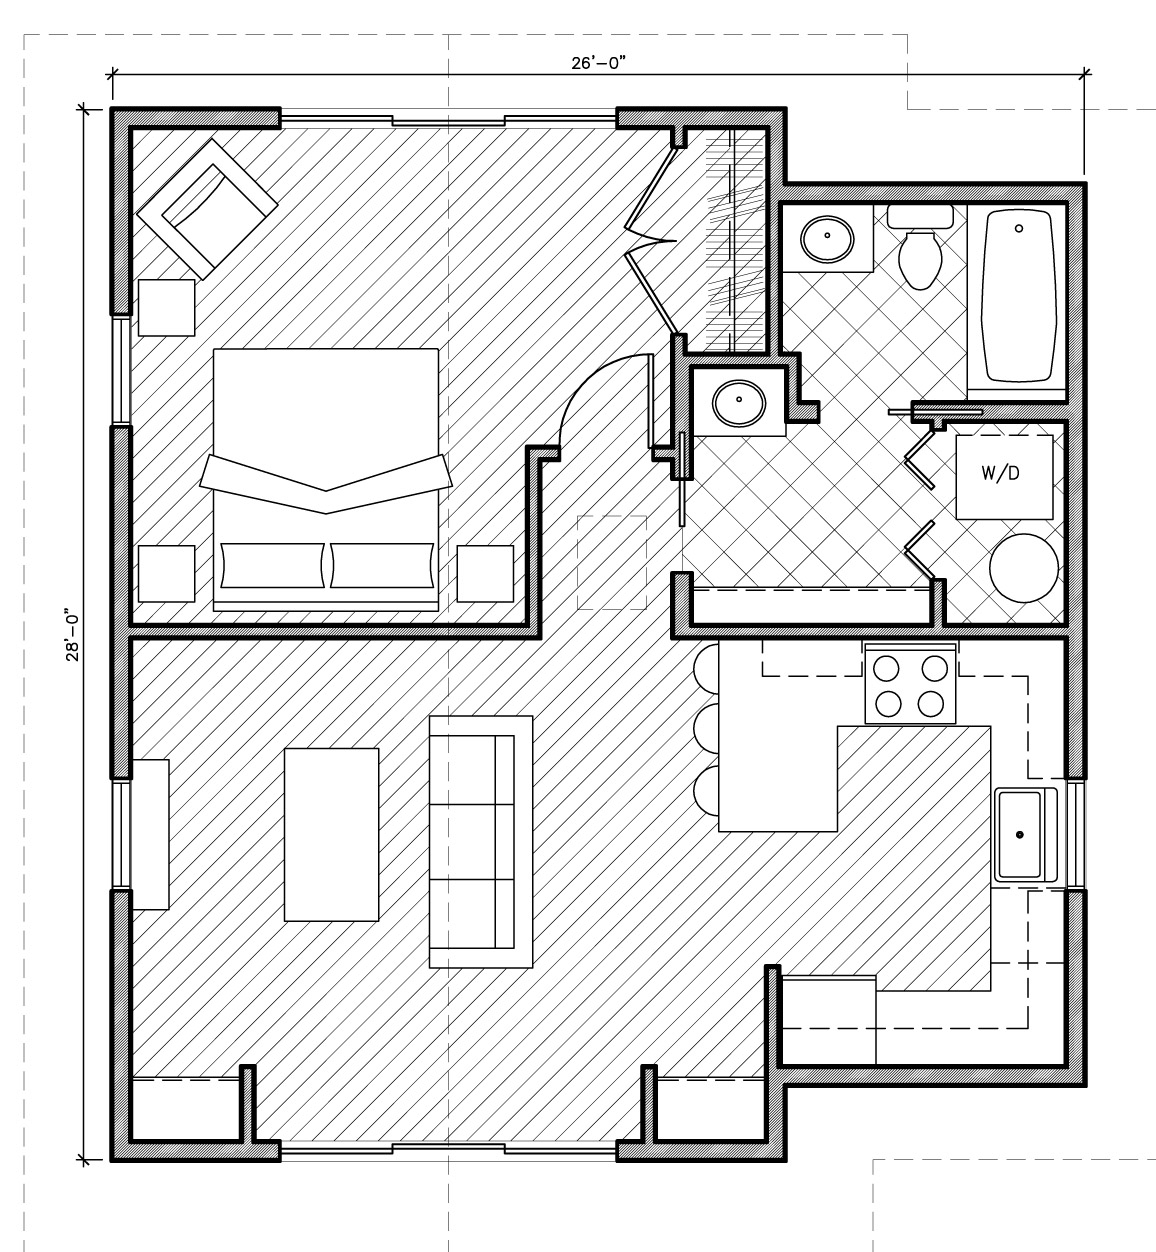 Design banter home plan collection - One bedroom house design ...